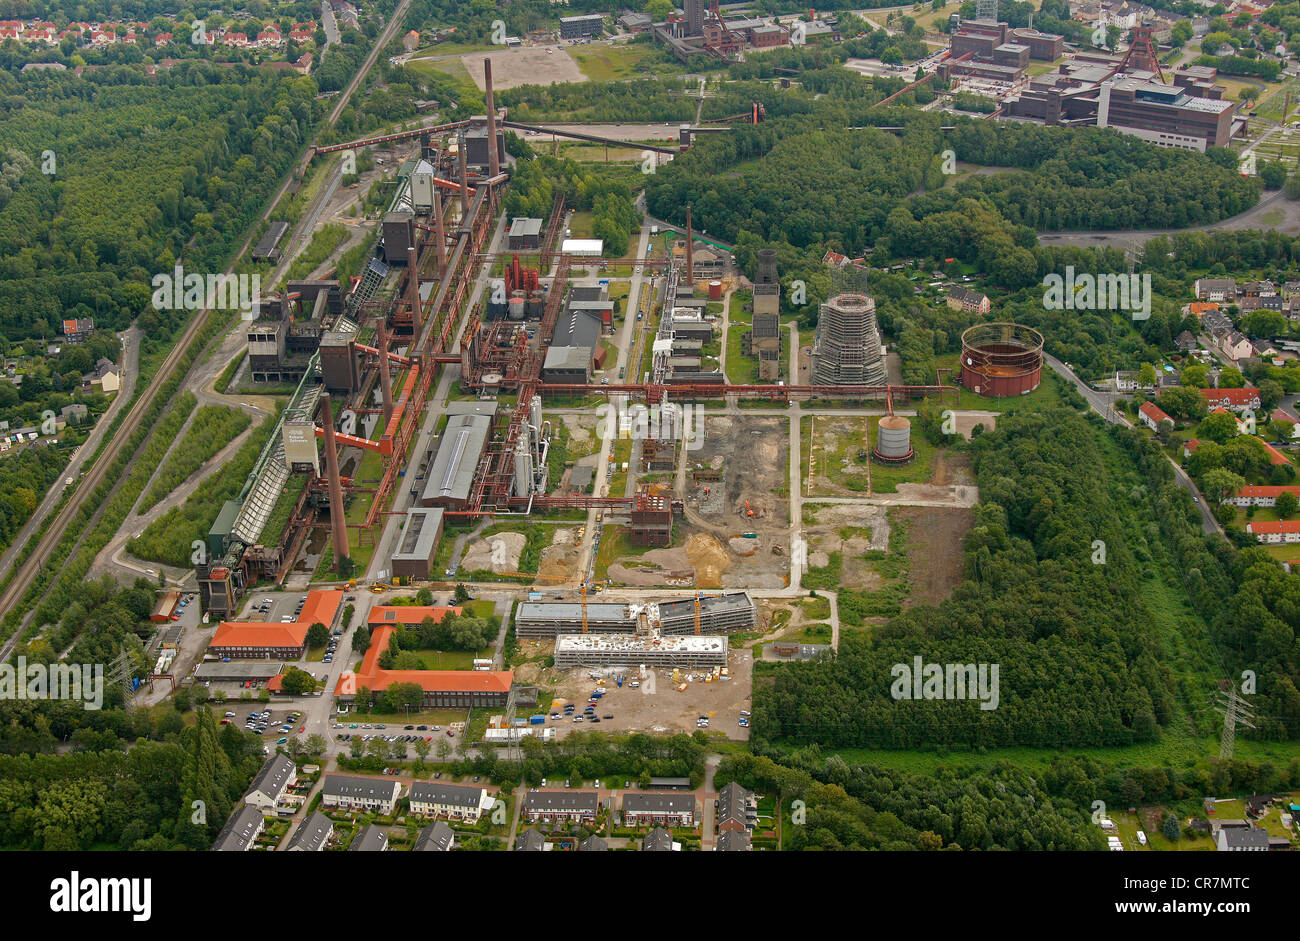 Aerial view, Zollverein Kokerei coking plant, closed 1993, Essen, Ruhr area, North Rhine-Westphalia, Germany, Europe - Stock Image